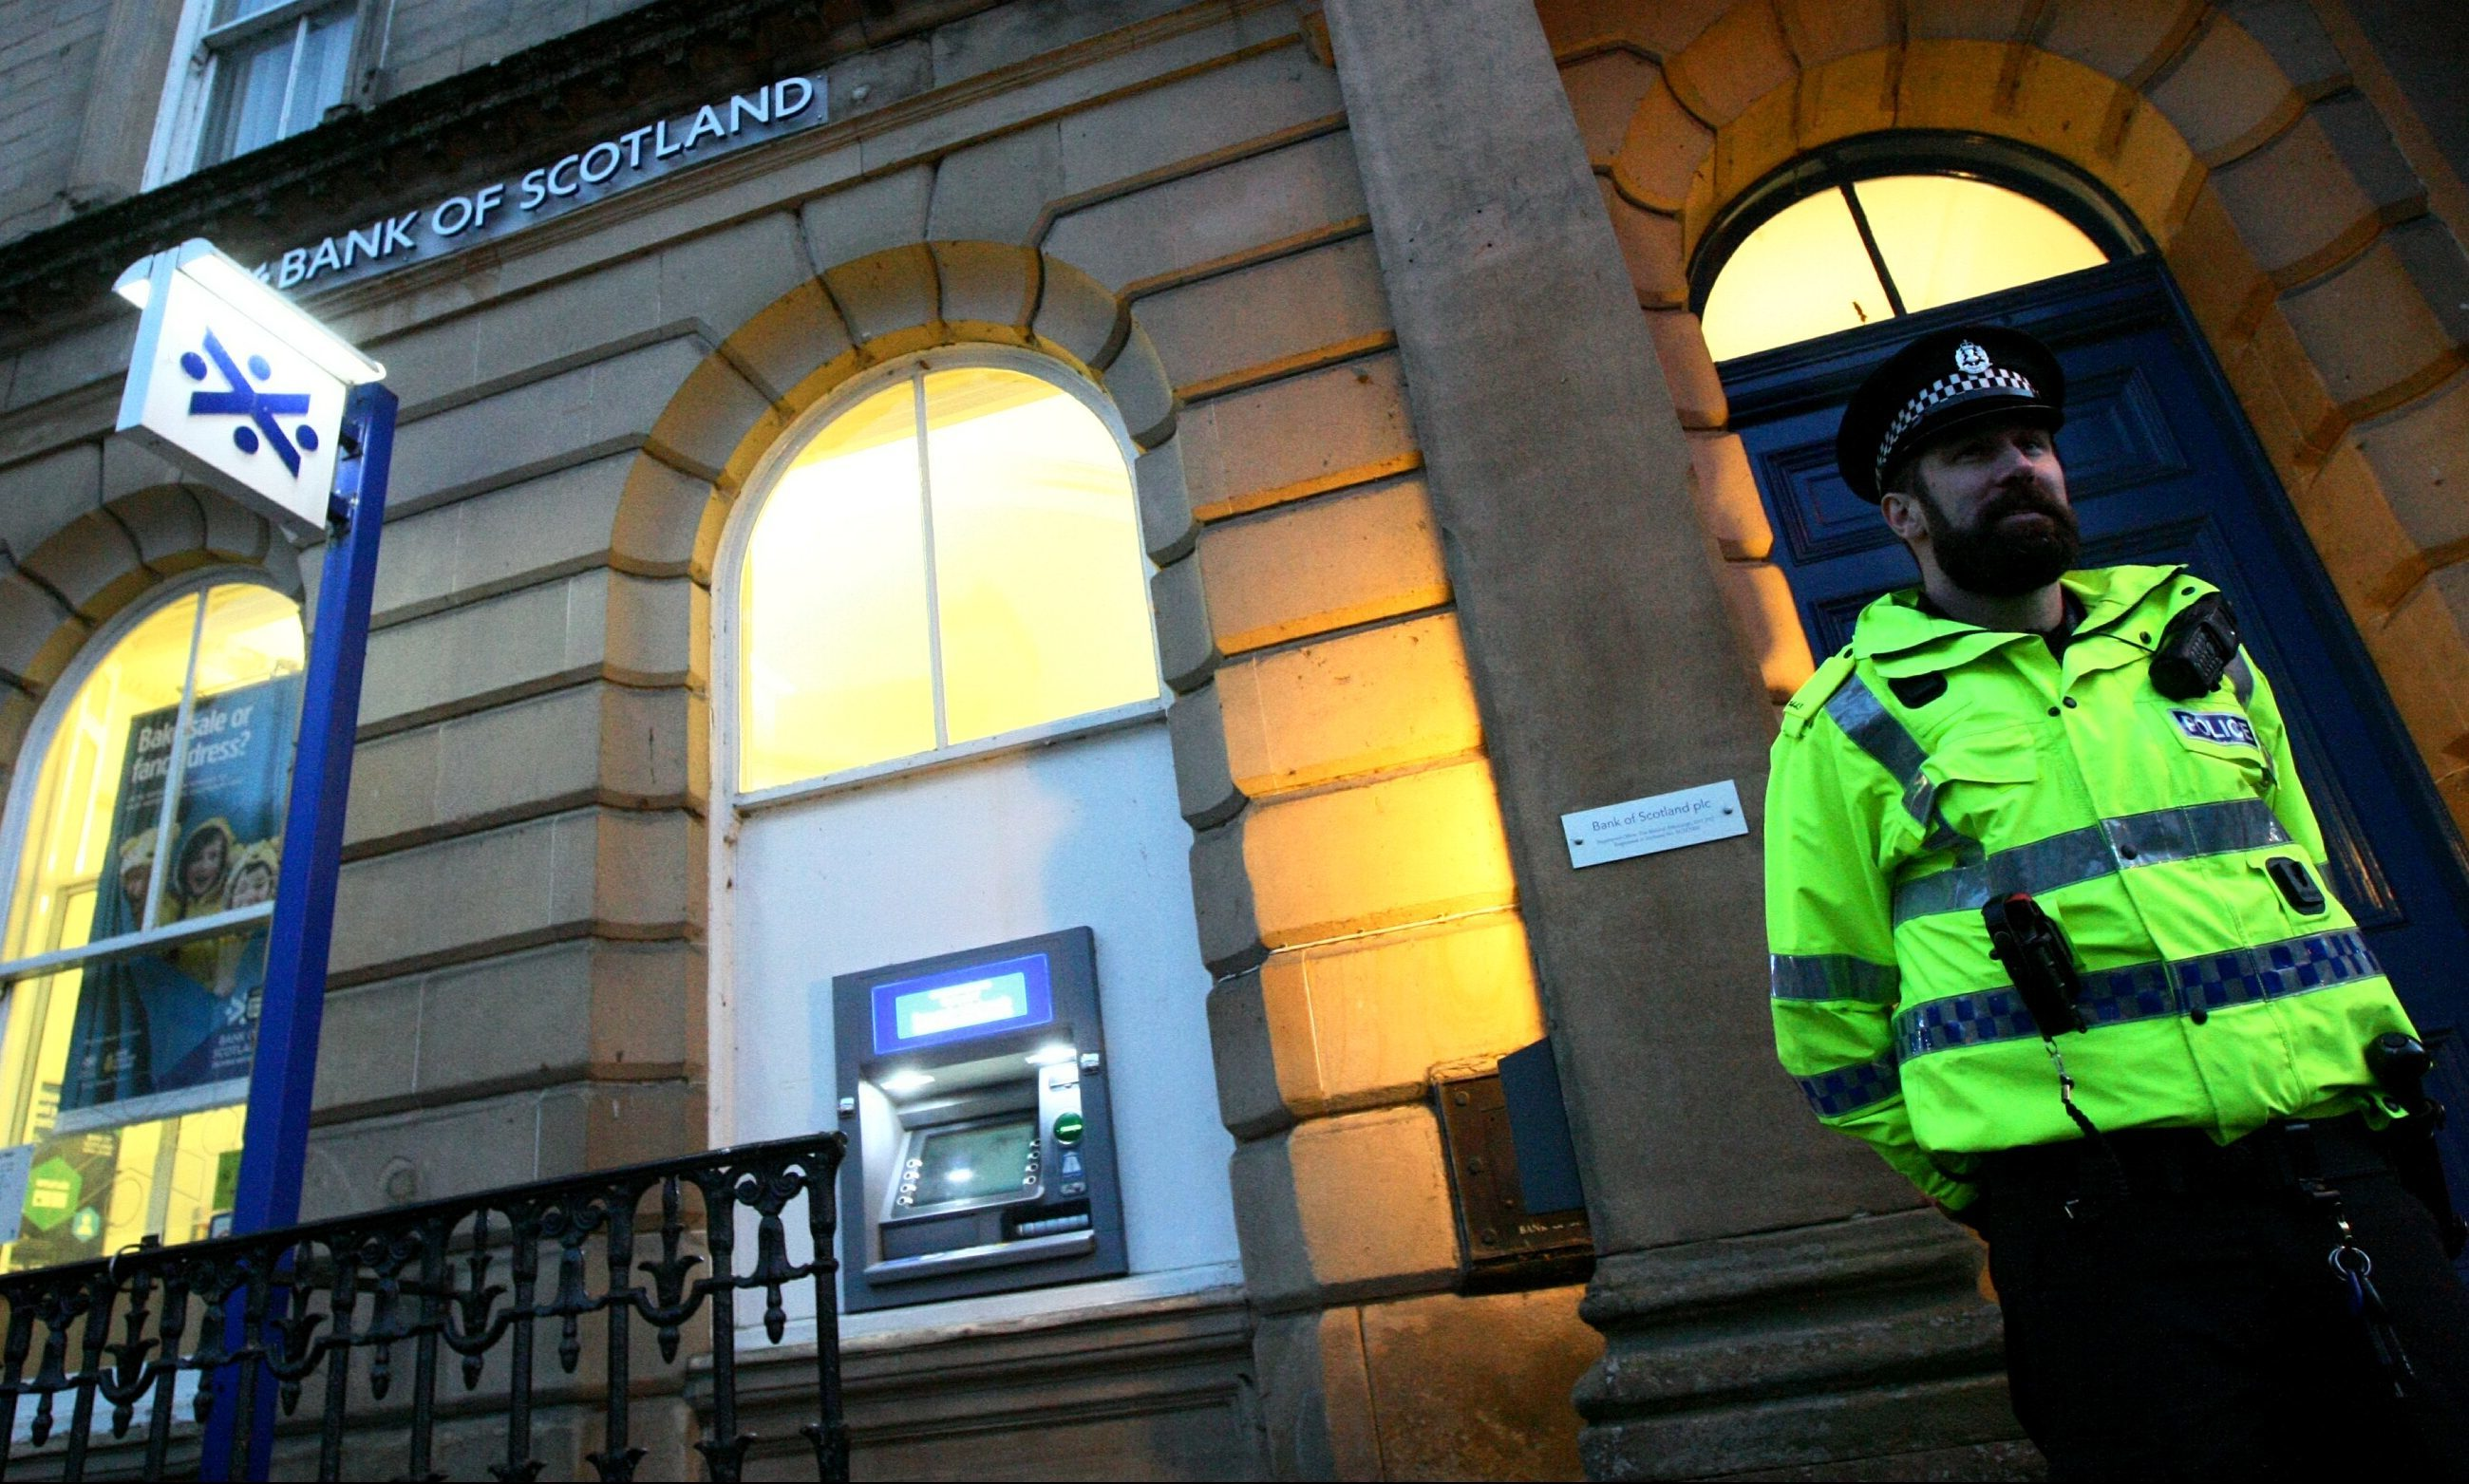 A police officer outside the bank branch on Tuesday.